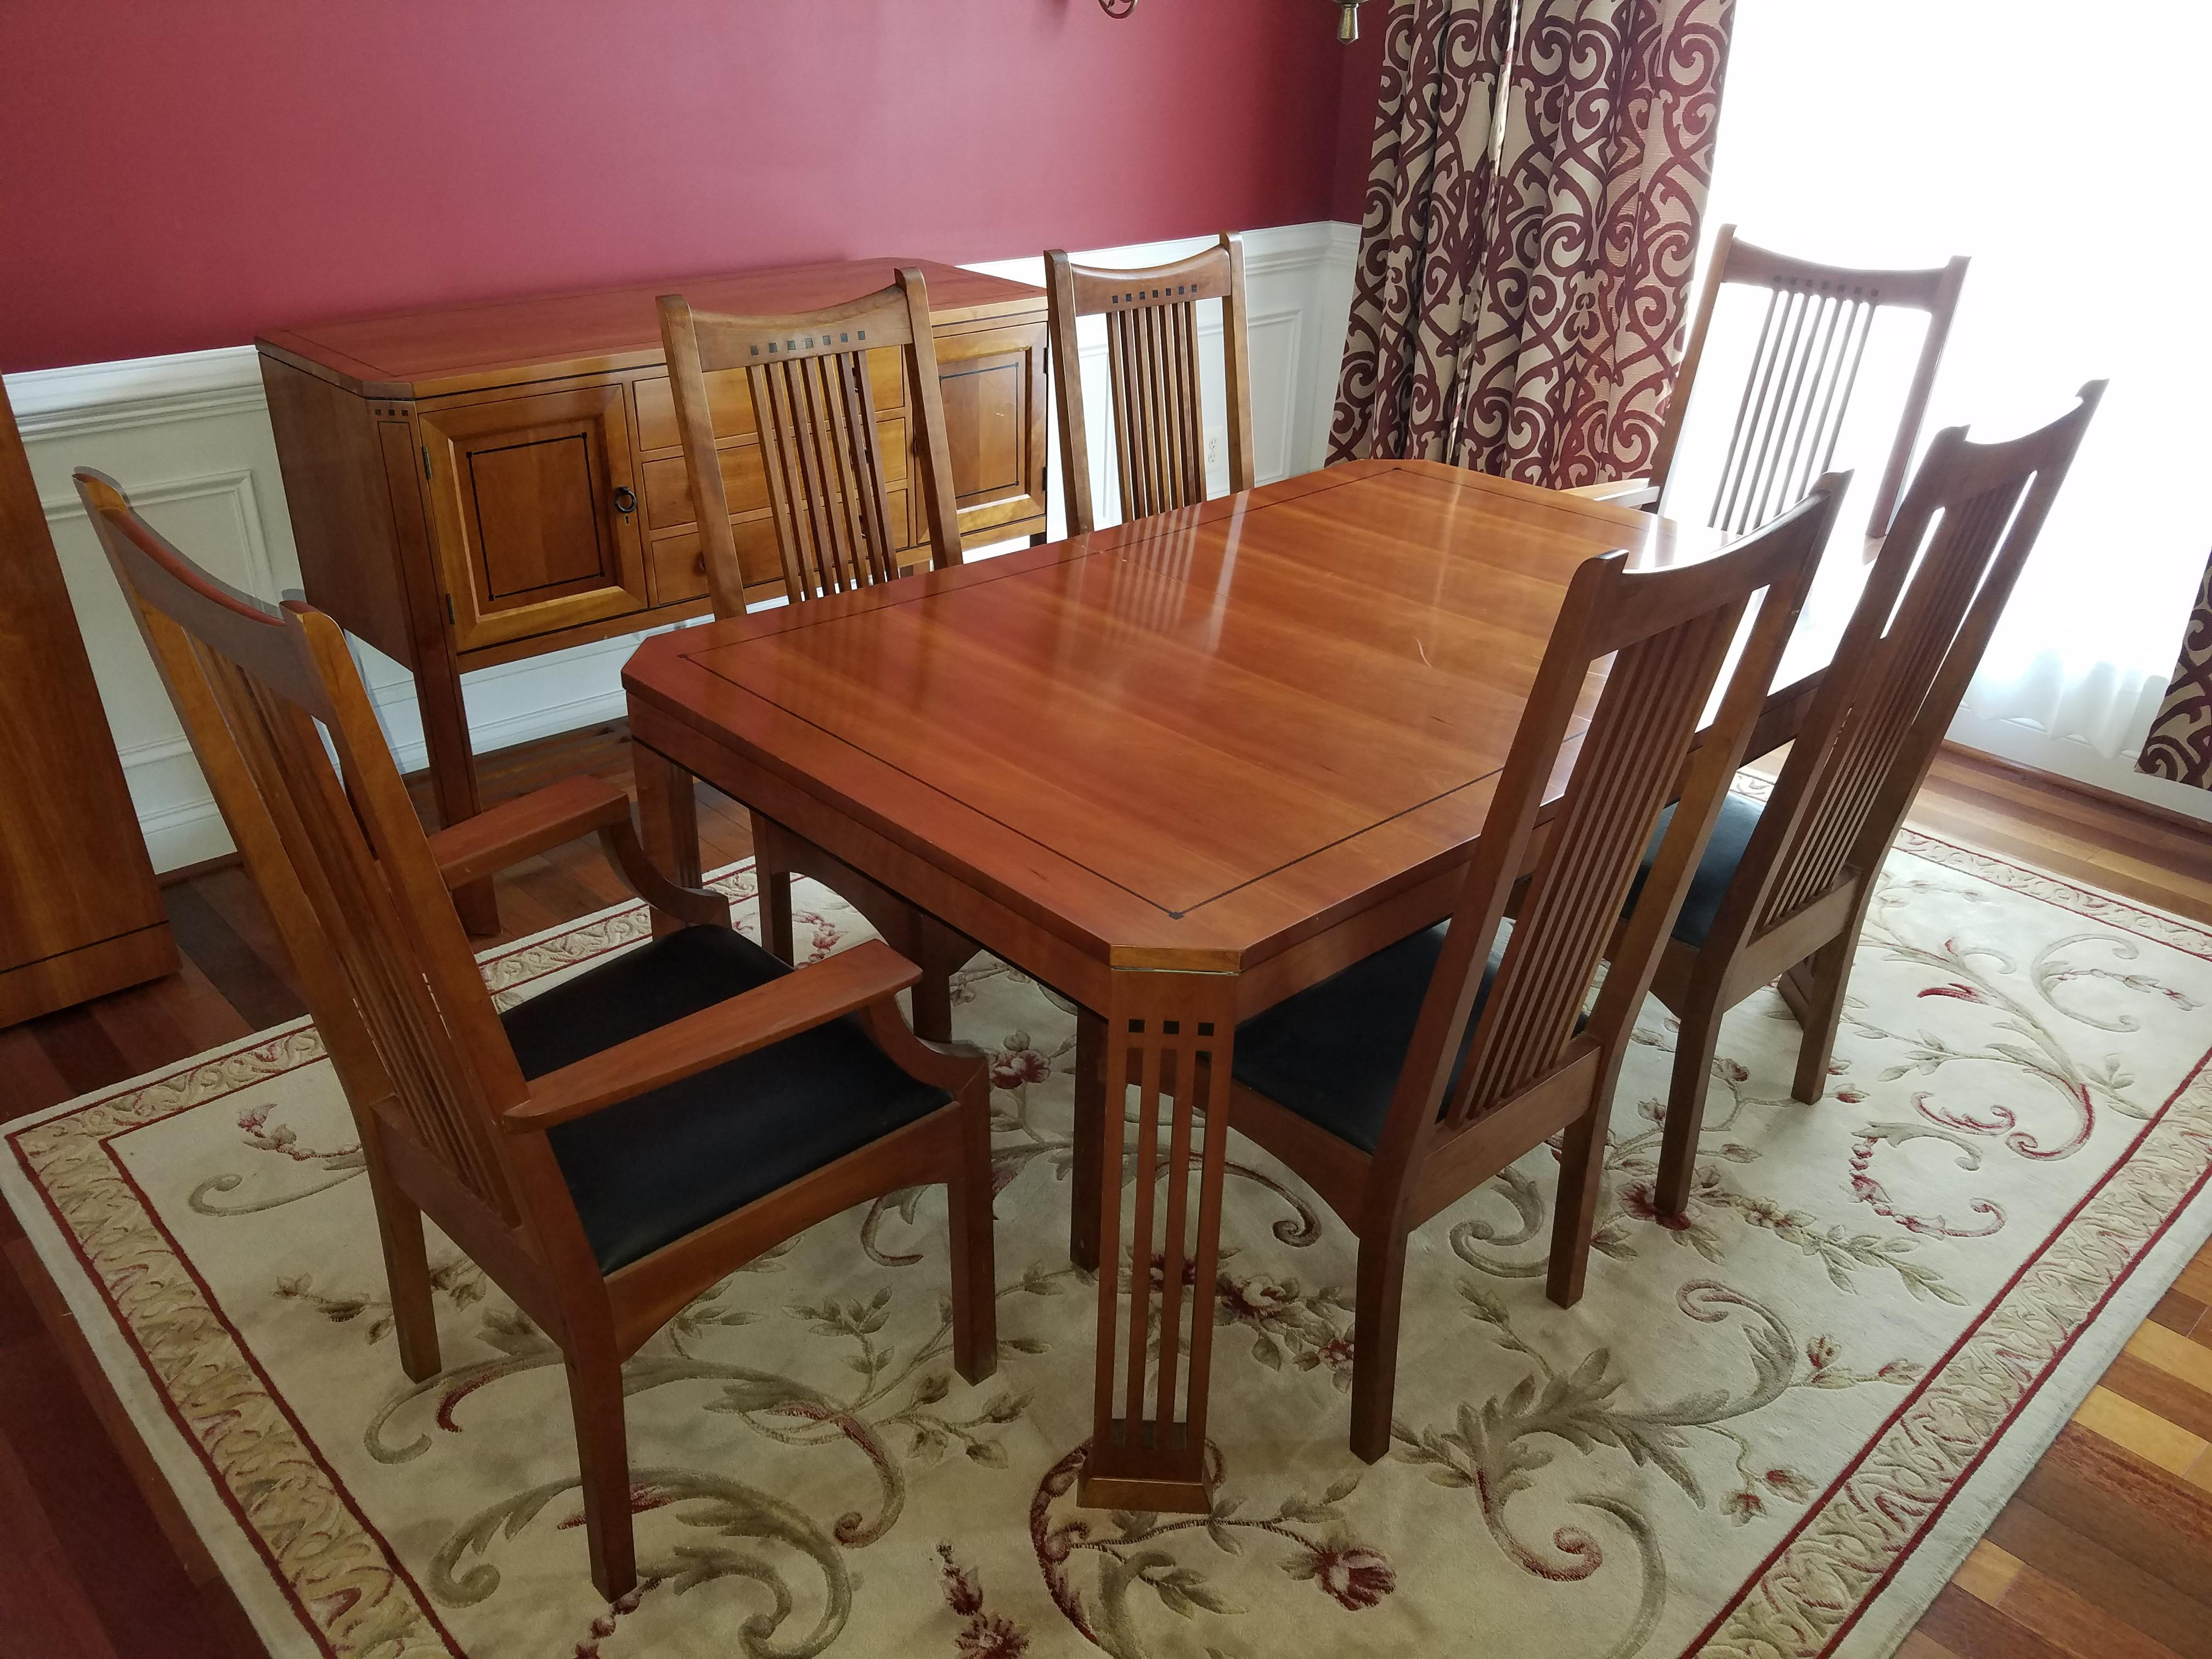 Stickley 21st Century Collection Dining Table Set With 6 Chairs - Image 2 of 11  sc 1 st  Chairish & Stickley 21st Century Collection Dining Table Set With 6 Chairs ...